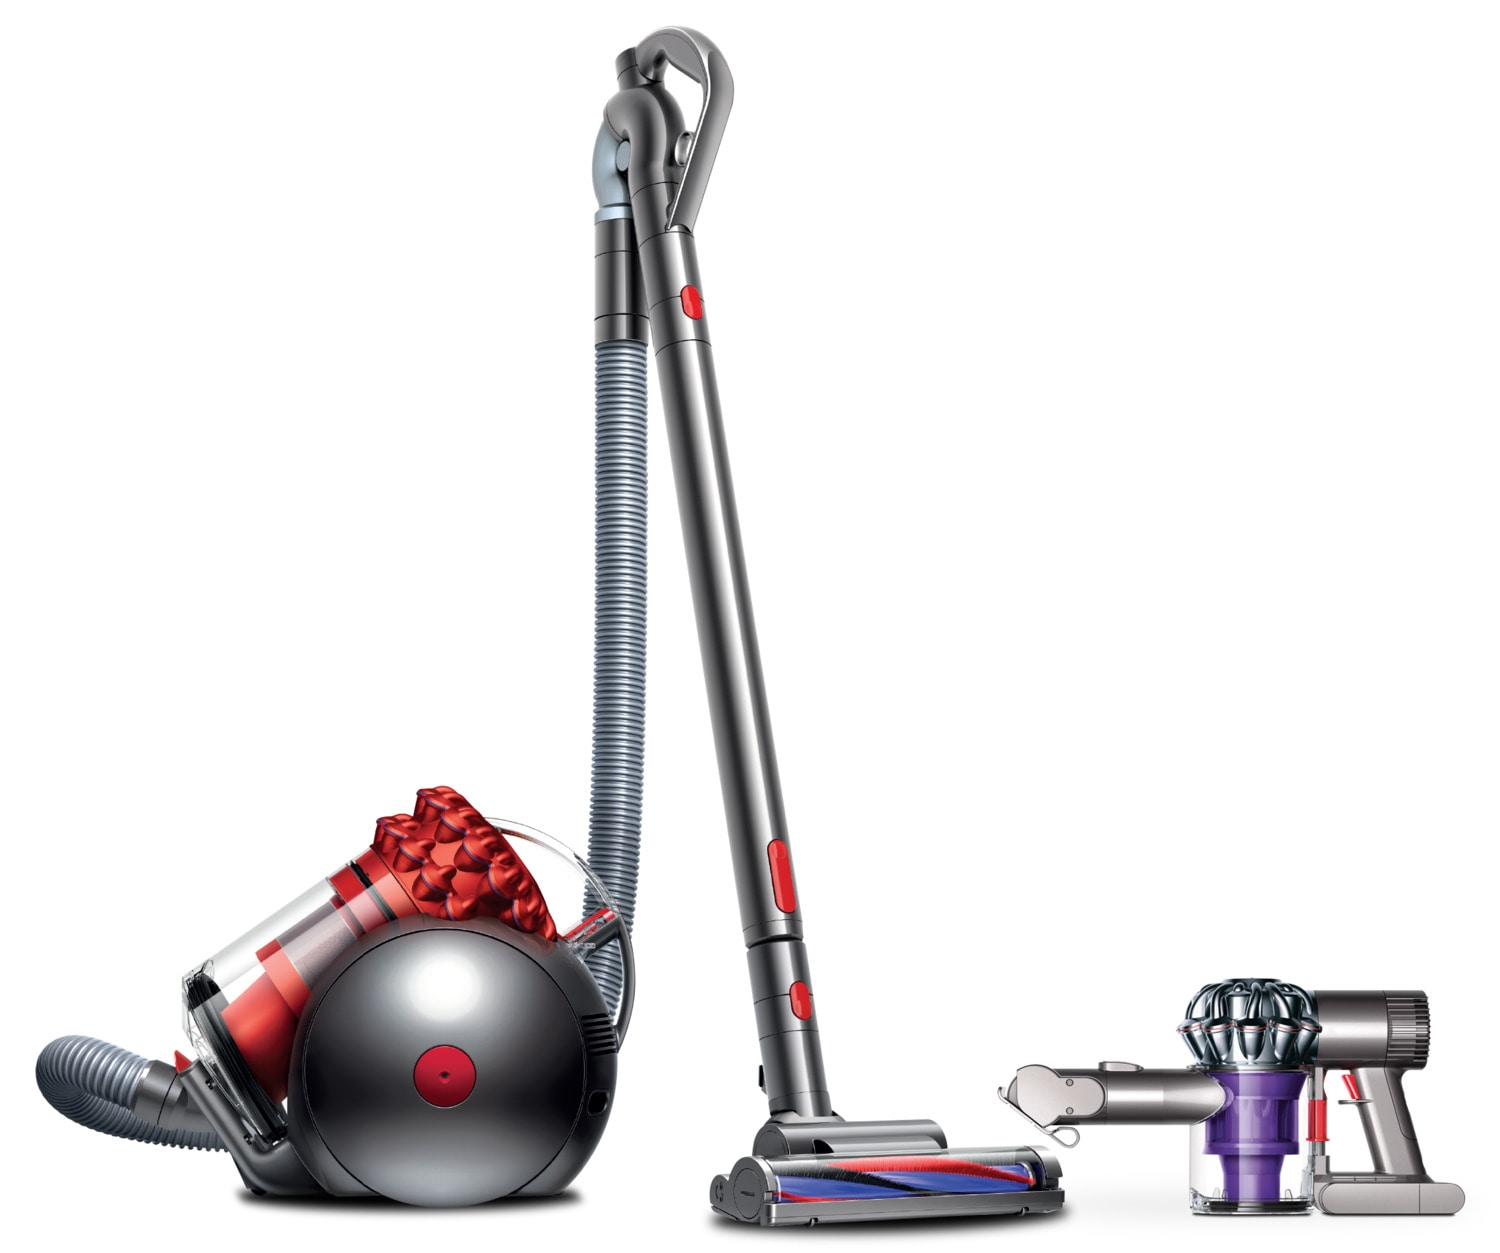 Dyson V6 Trigger Handheld Vacuum and Dyson Cinetic™ Big Ball™ Multi-Floor Vacuums